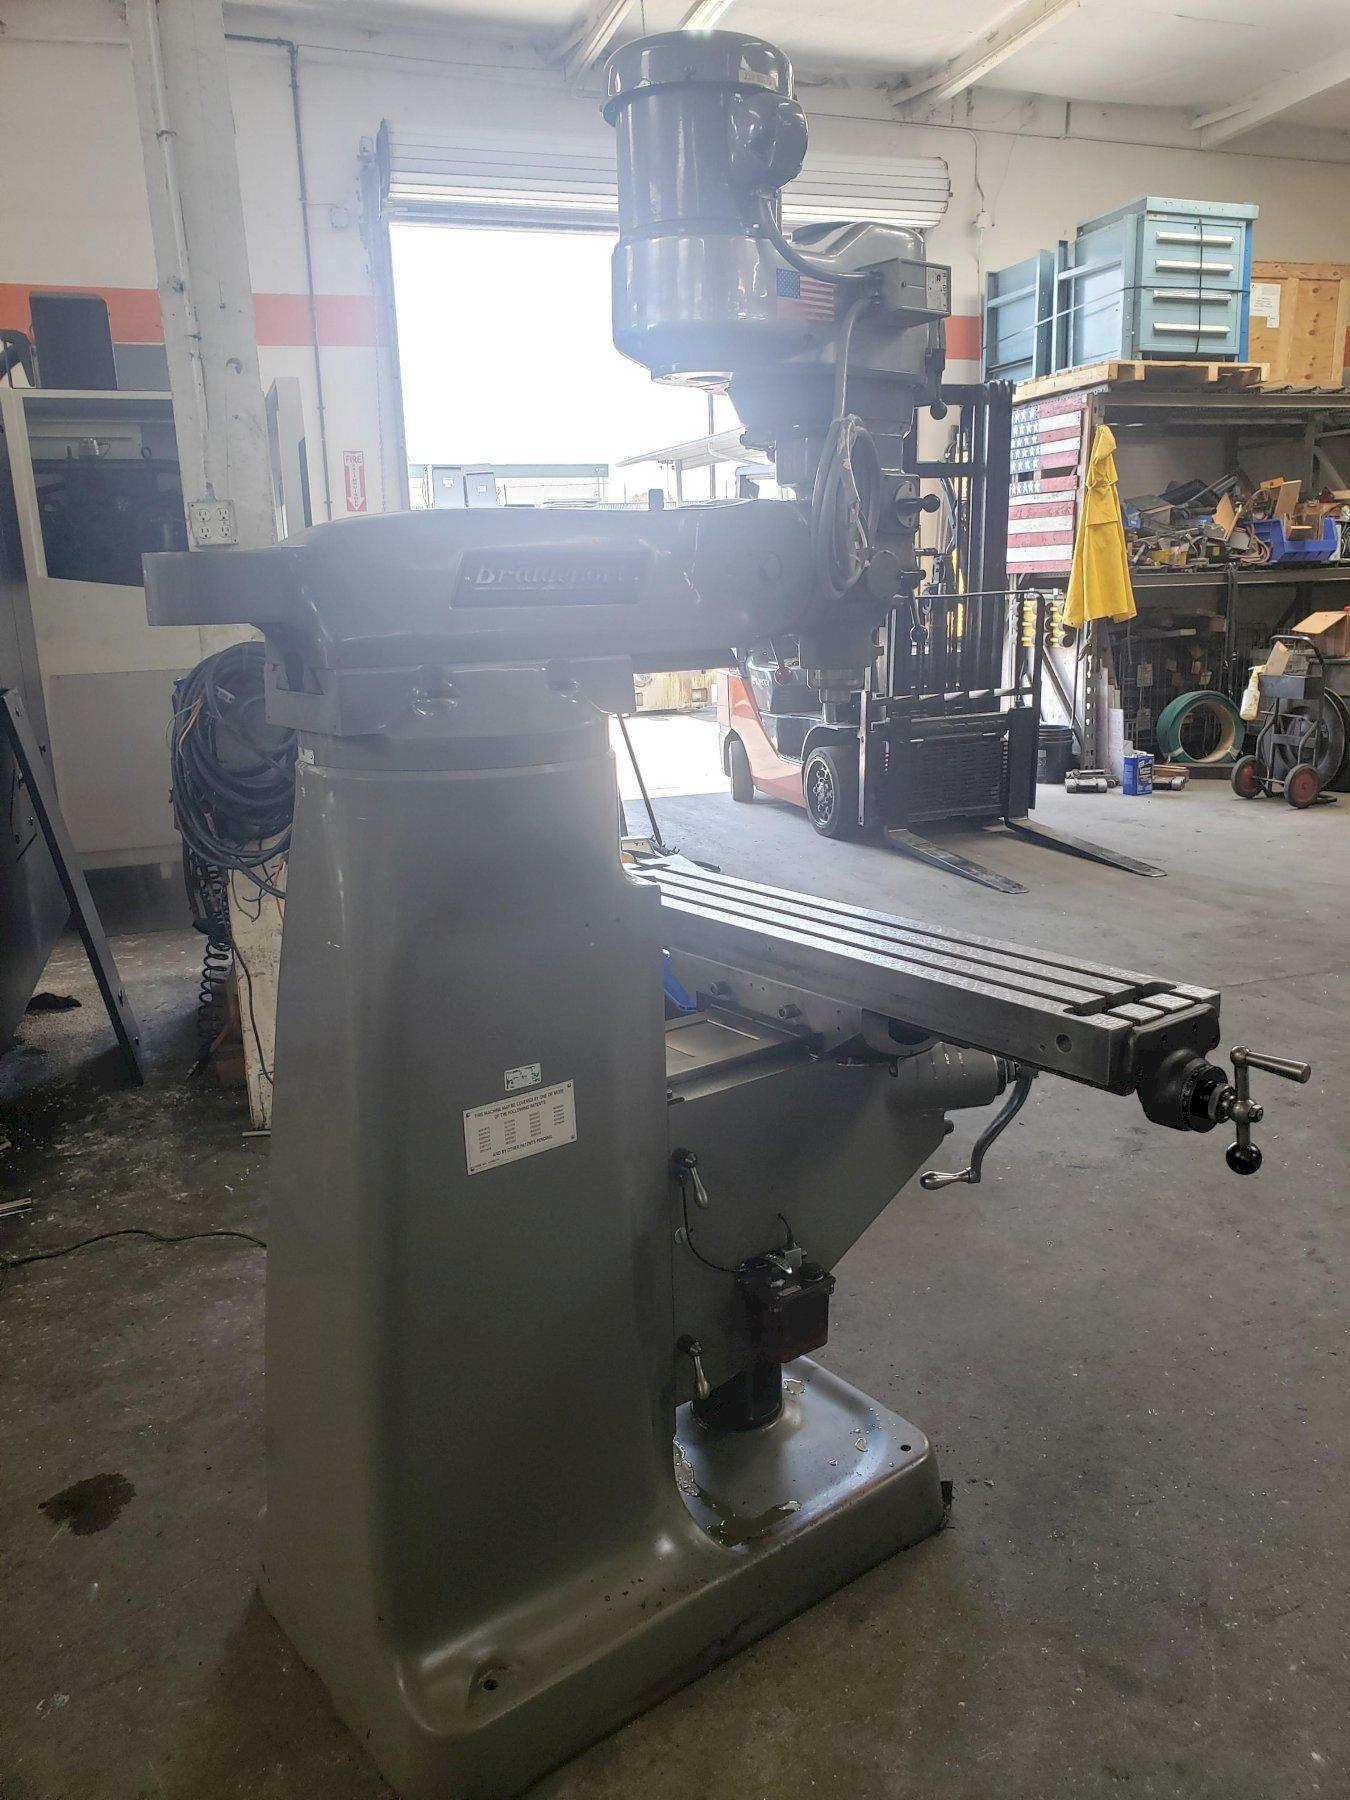 Bridgeport Series I Vertical Mill with: New Align Power Feed Table, Head Re-worked, Table Re-flaked, New X & Y Screws and Nuts, and One Shot Lube.